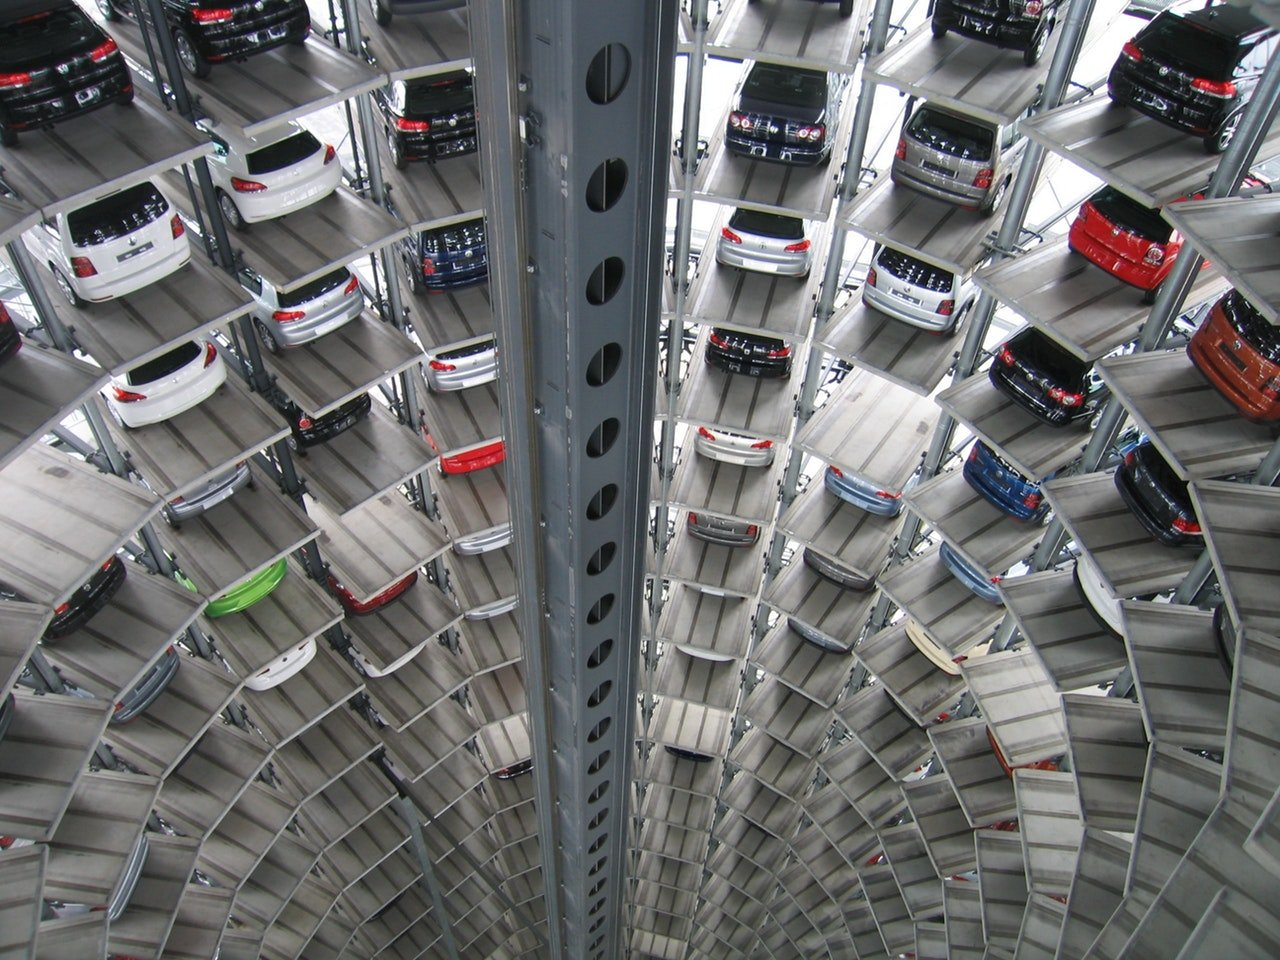 How to store a car in a storage unit